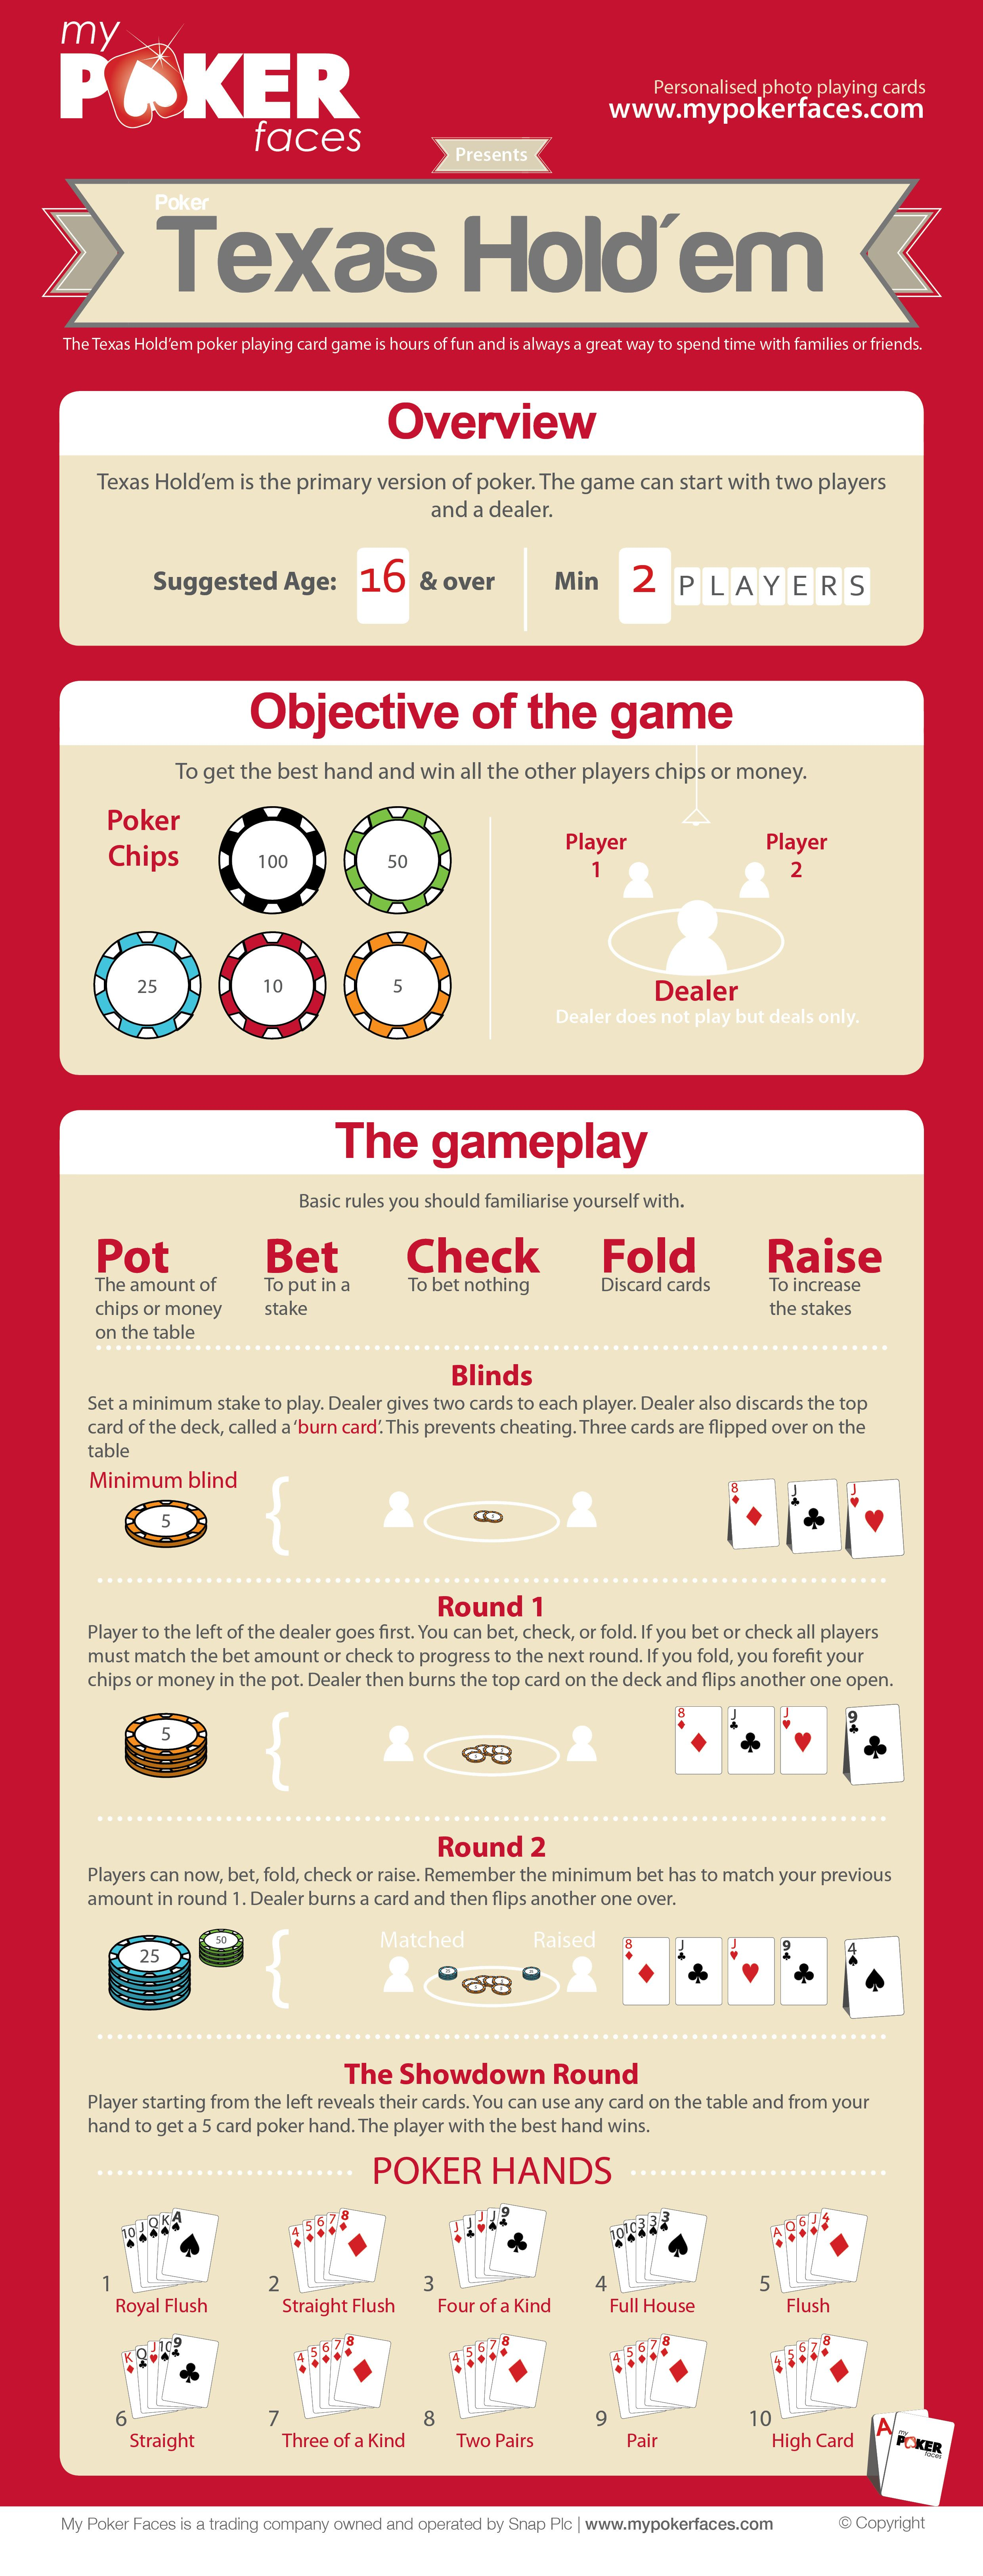 Poker playing card games Card games, Playing card games